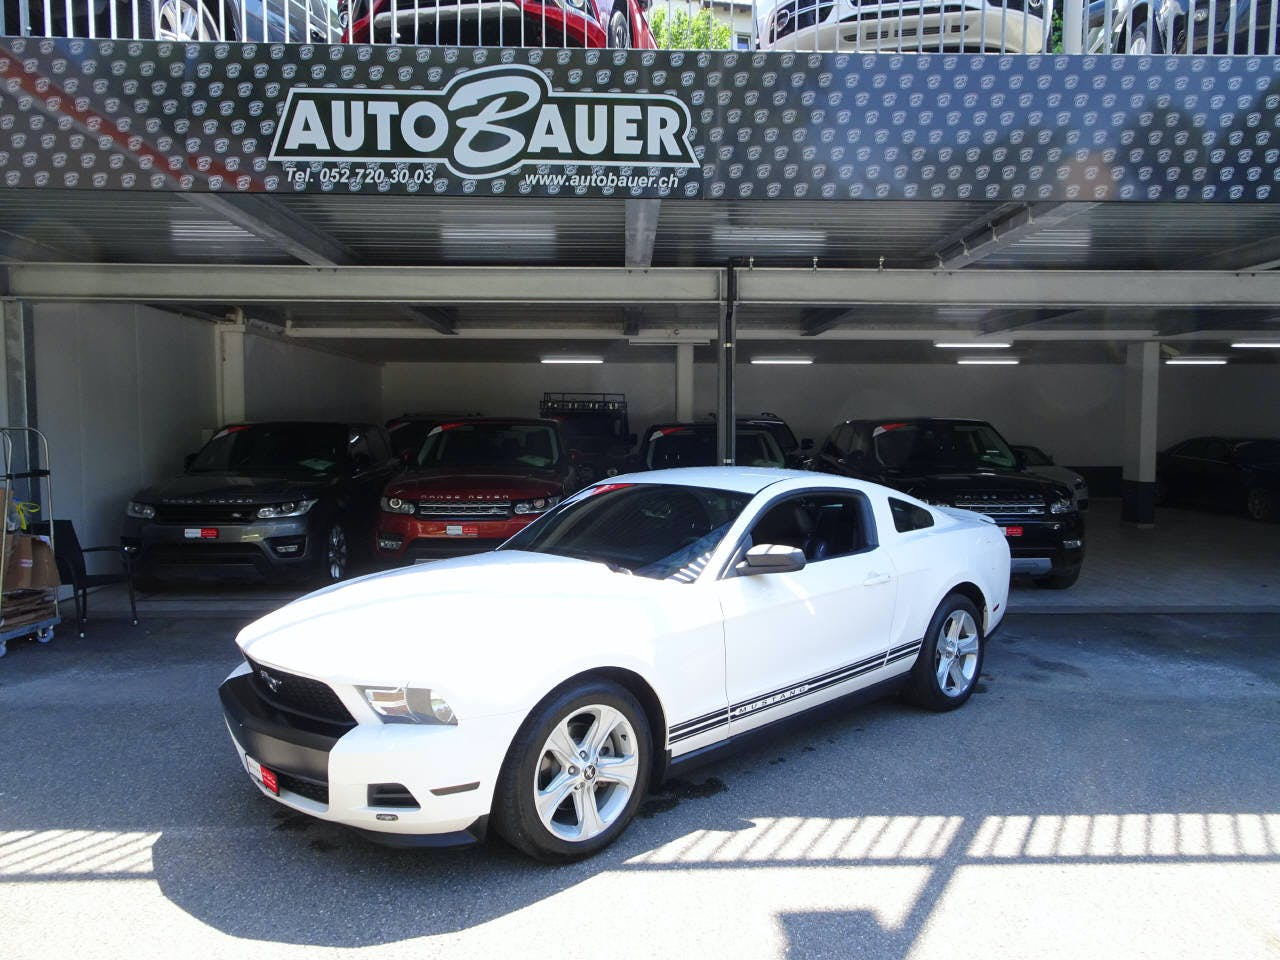 coupe Ford Mustang Coupé 3.7 V6